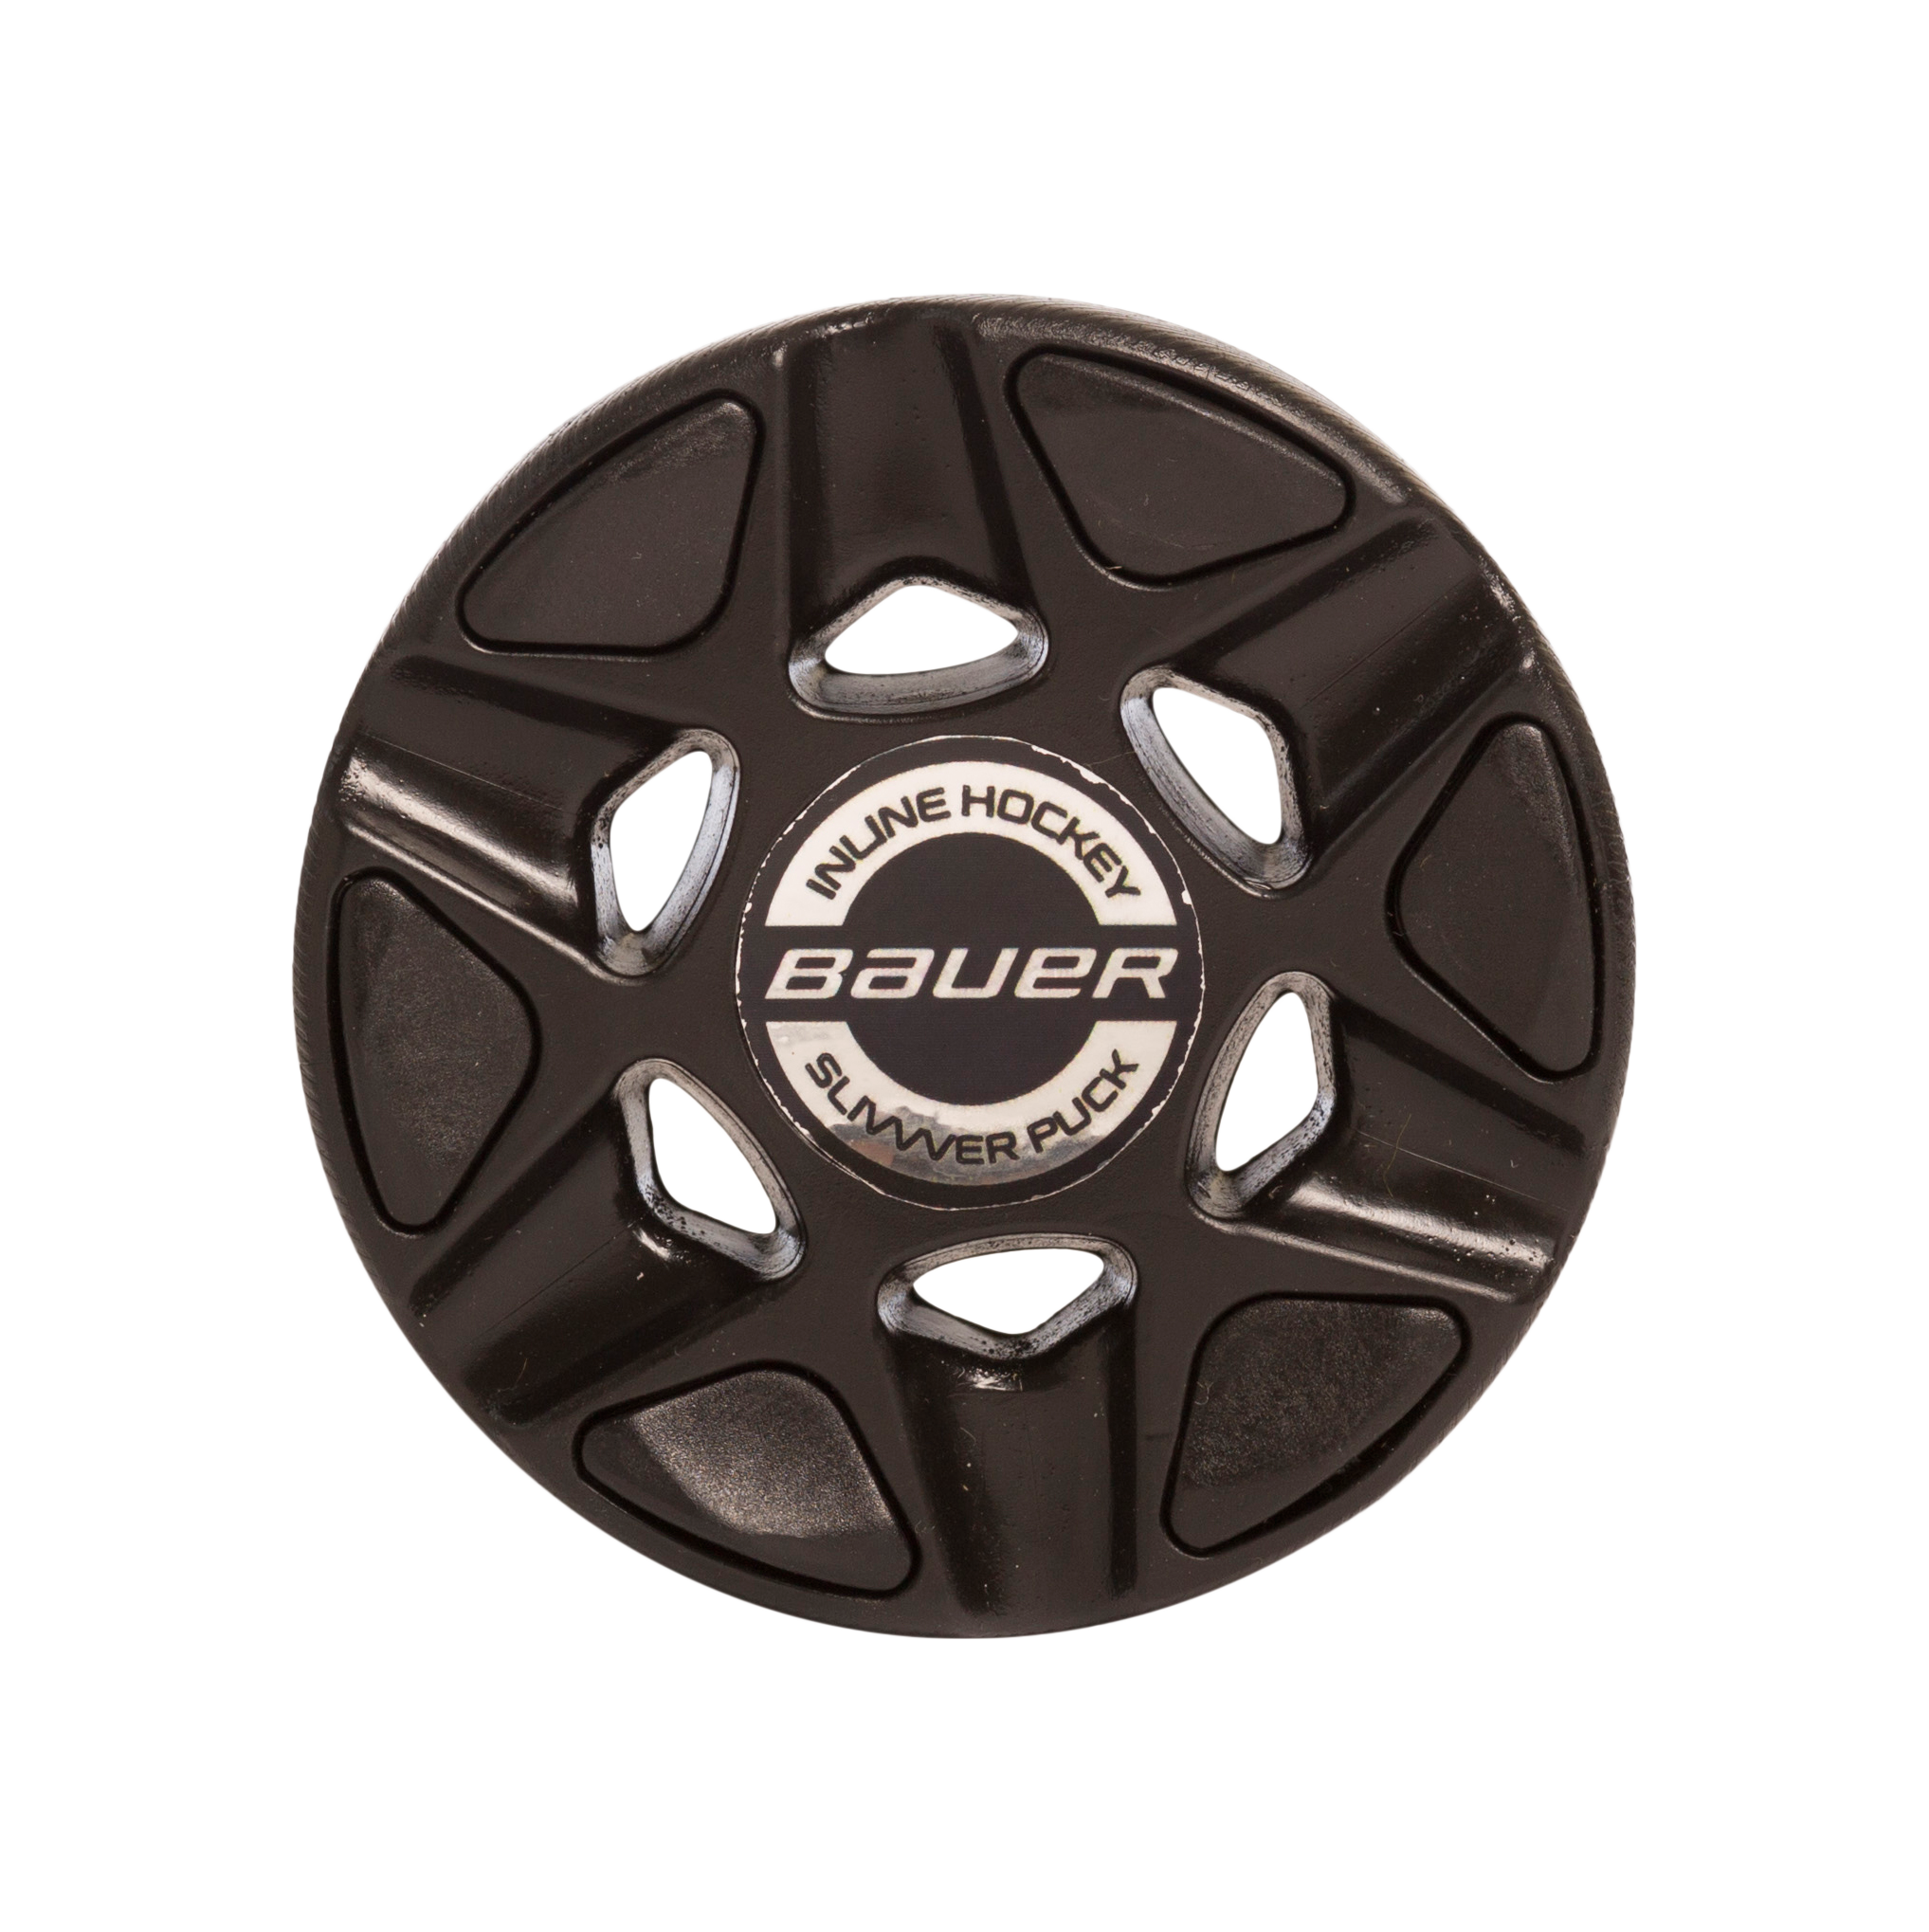 BAUER RH SLIVVVER PUCK (SINGLE),BLK,medium